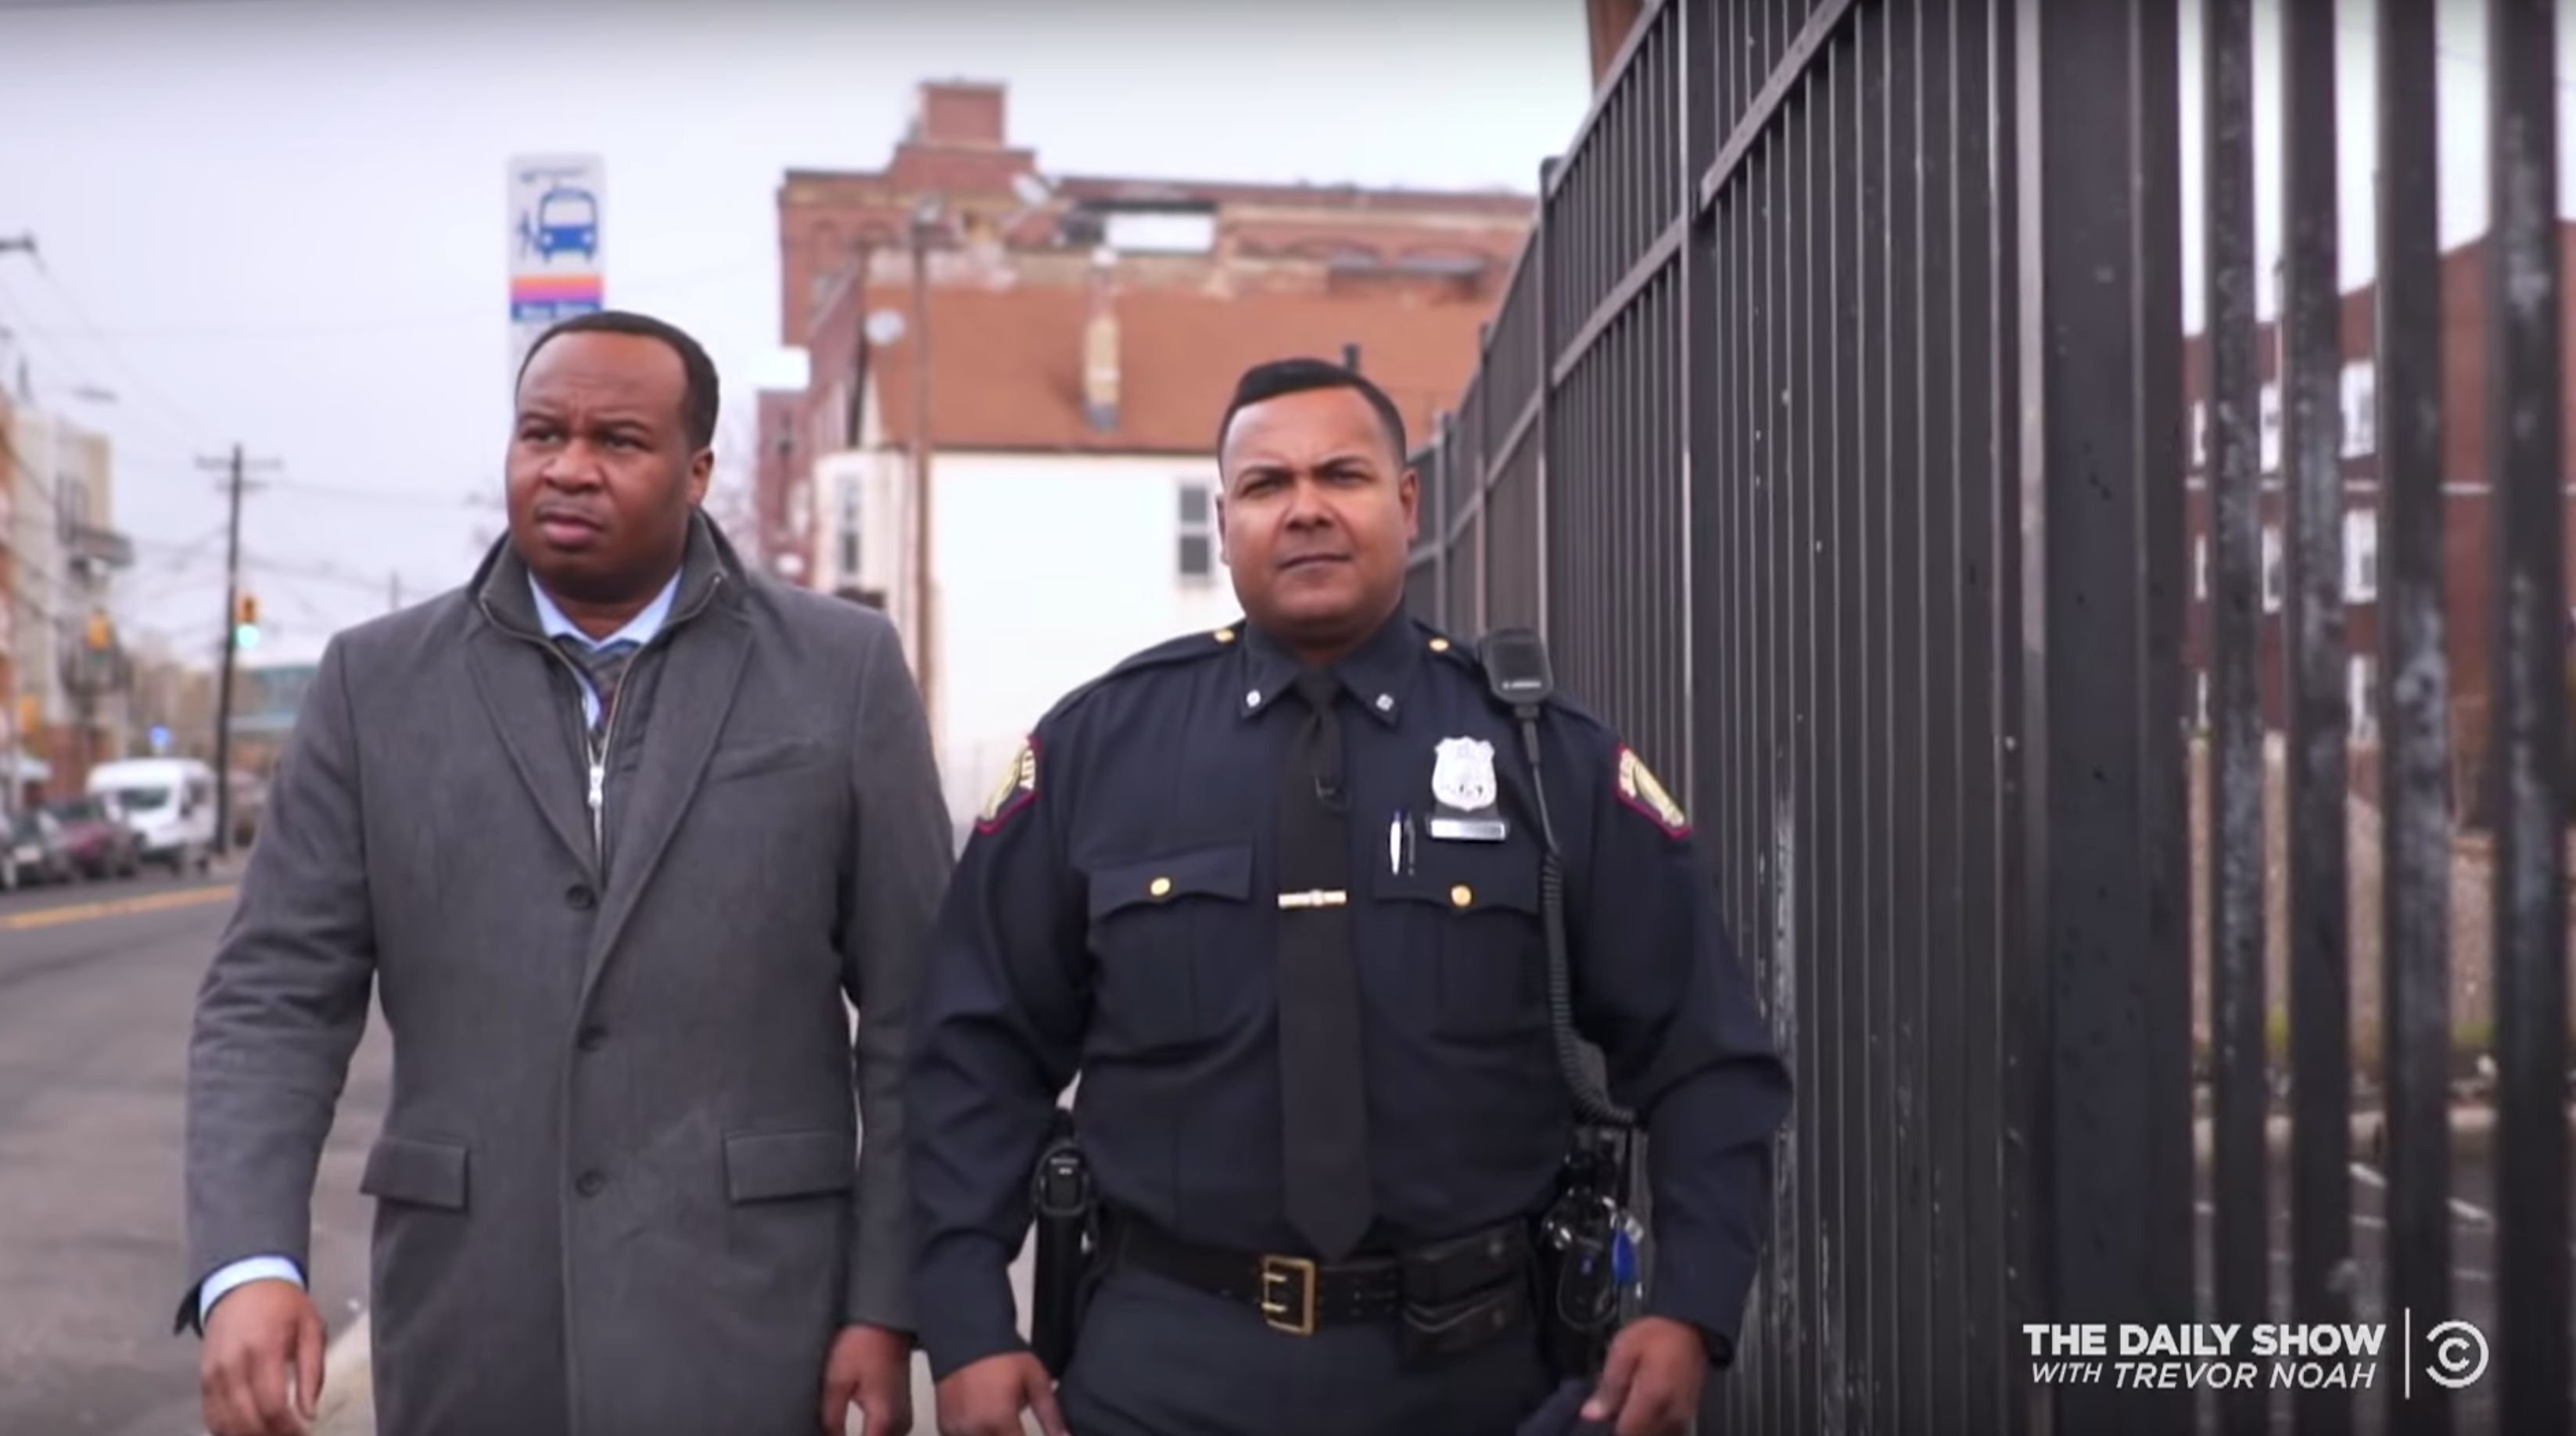 Roy Wood Of 'The Daily Show' Shows What Policing Is Like In Sanctuary Cities